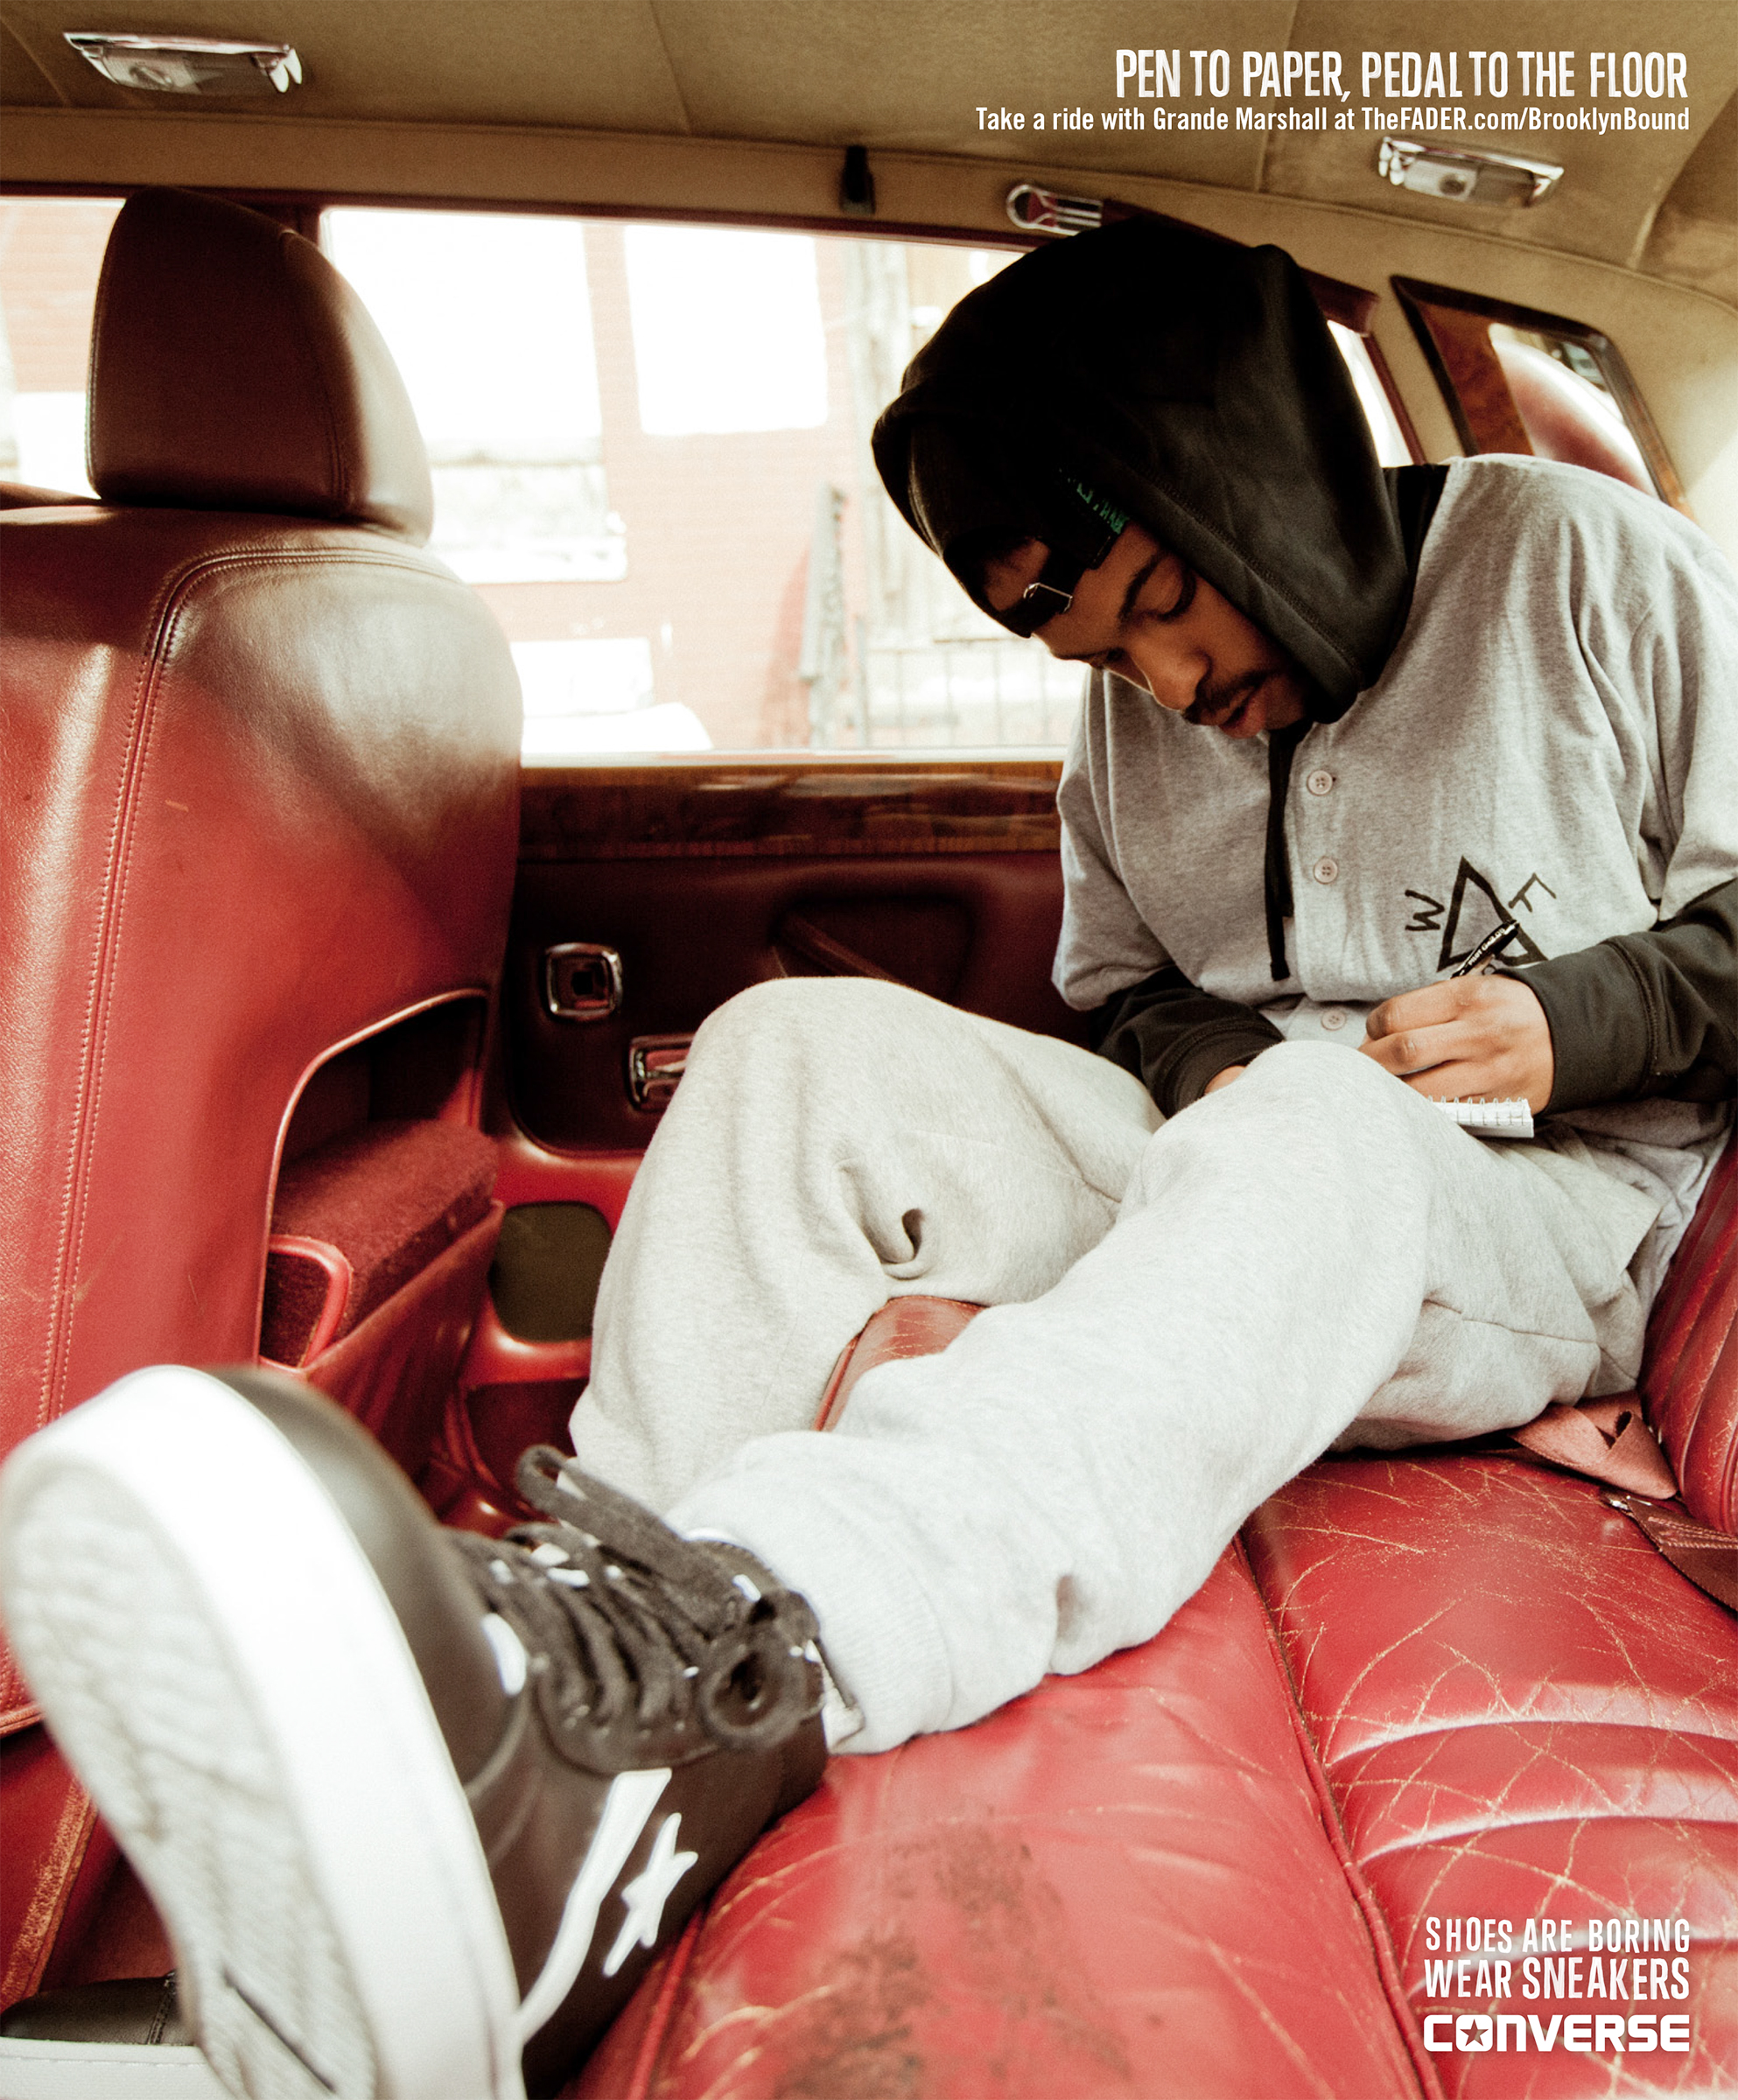 Grande Marshall for Converse